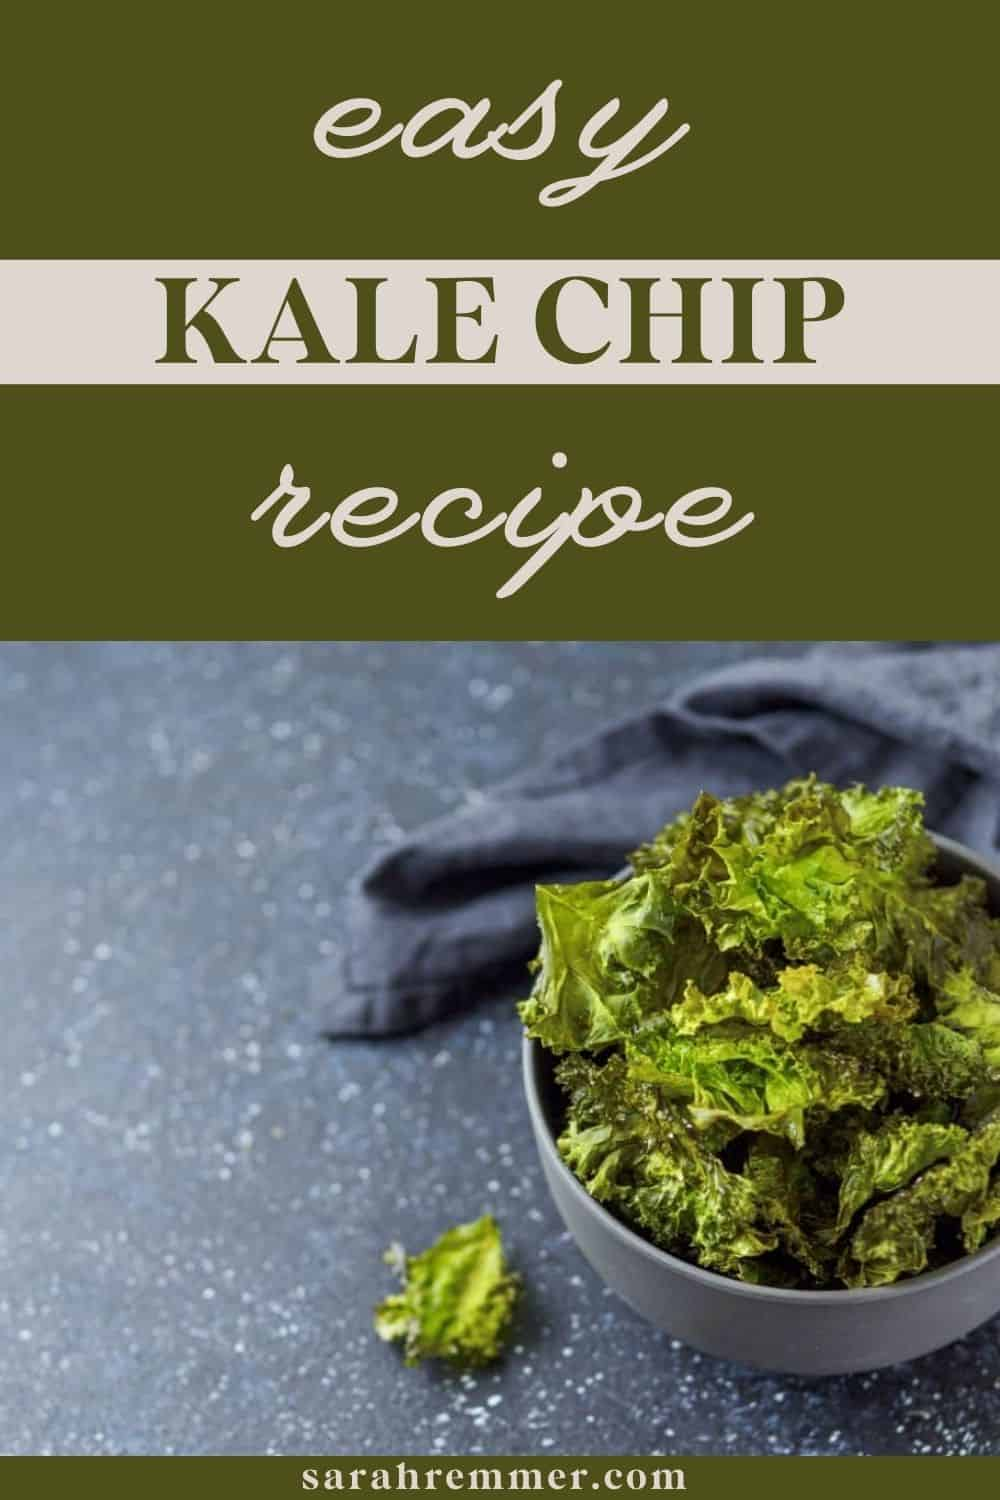 """I just recently started hearing the buzz about """"Kale Chips""""! To be honest, the first thing I thought when I heard the term Kale Chips was """"how the heck can Kale- a leafy green vegetable- be made into a crispy, tasty chip?!"""". I was quite skeptical about how this """"chip"""" would taste. I'm all about healthy greens, but really?! I pictured a wilted, soggy, dull green-colored finger food... I was so wrong!"""